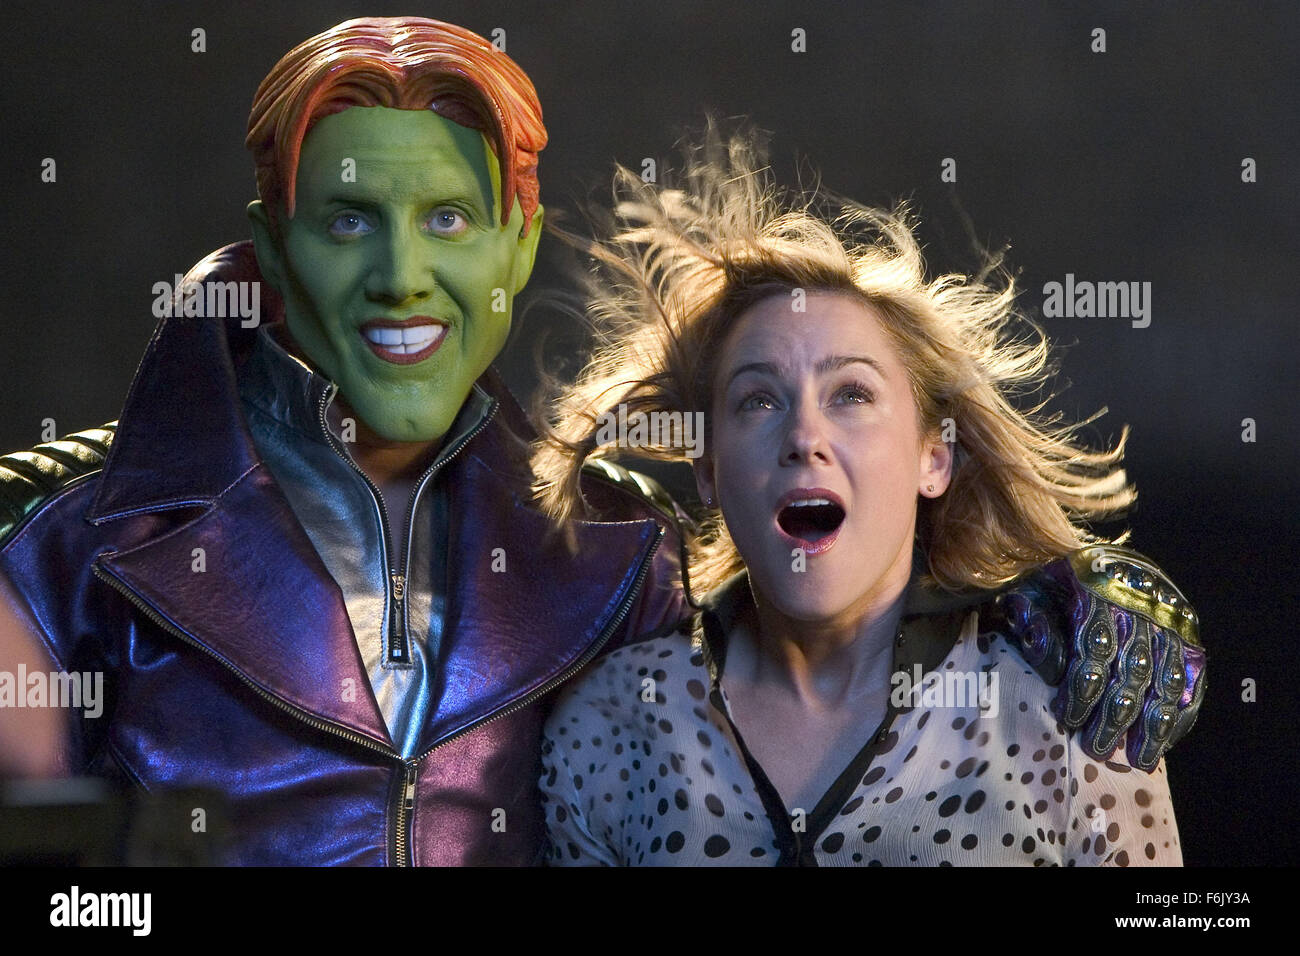 JAMIE KENNEDY & TRAYLOR HOWARD SON OF THE MASK (2005 Stock Photo ...